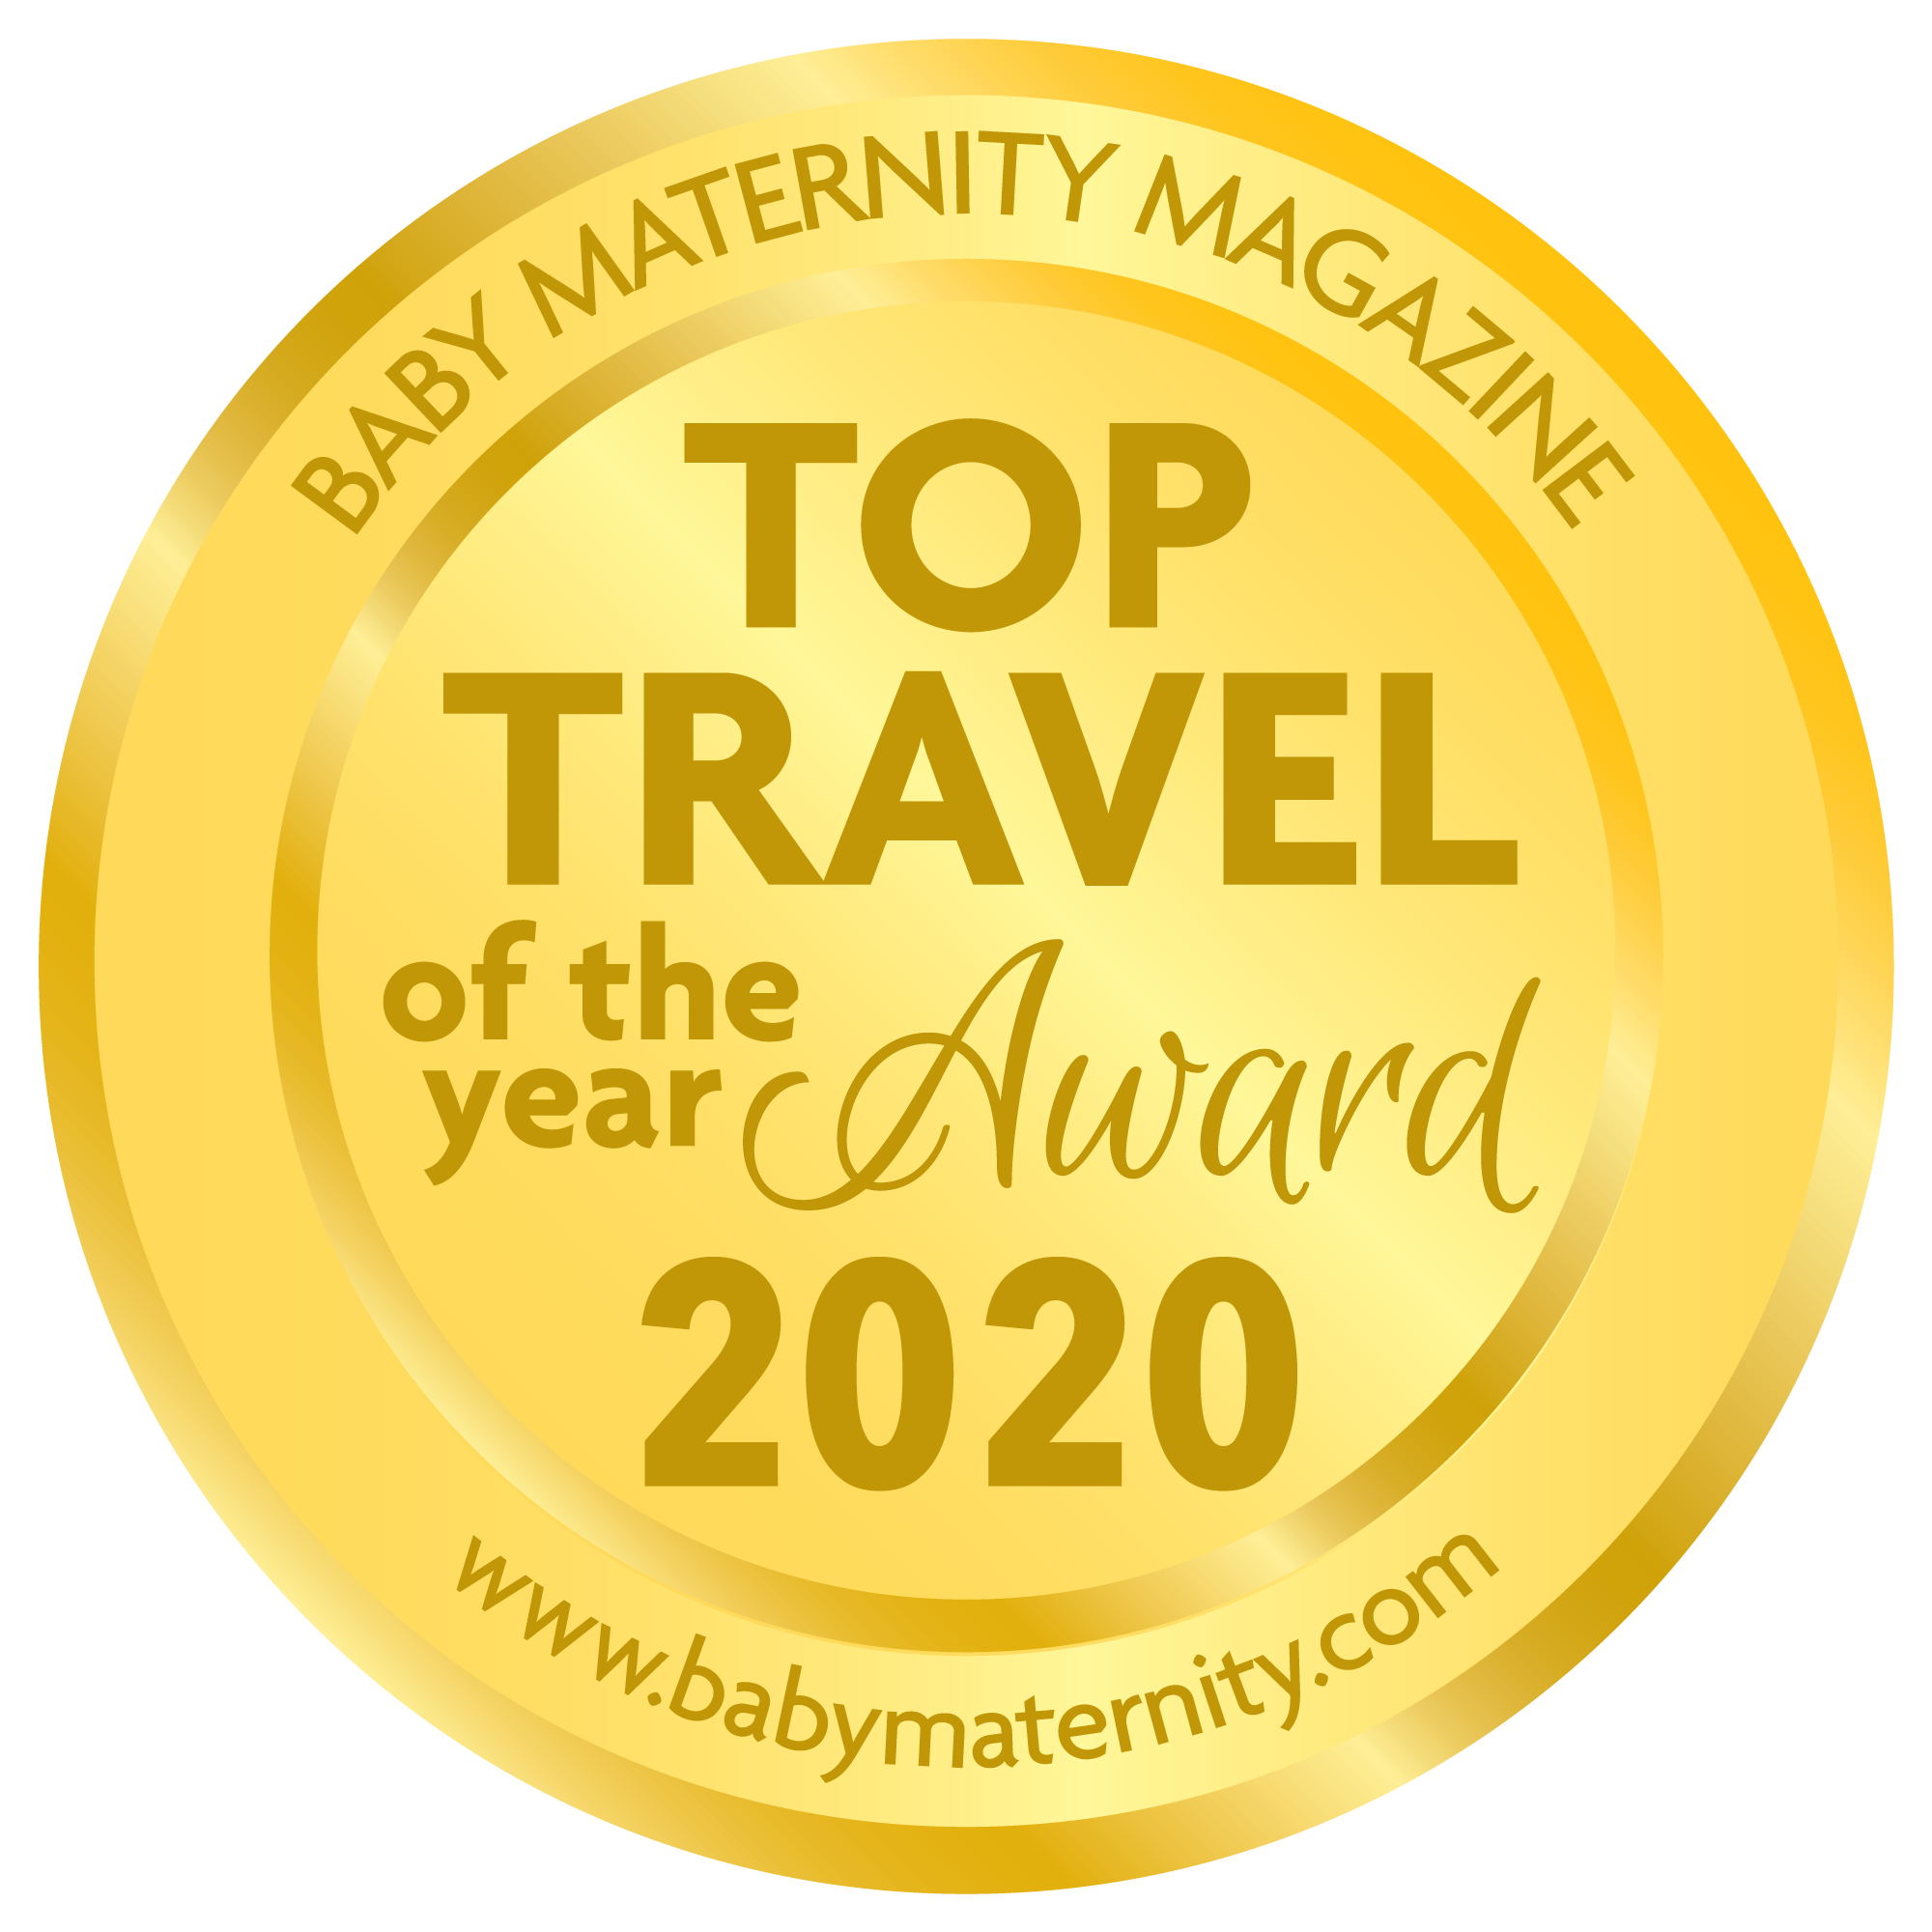 Top Travel of the Year